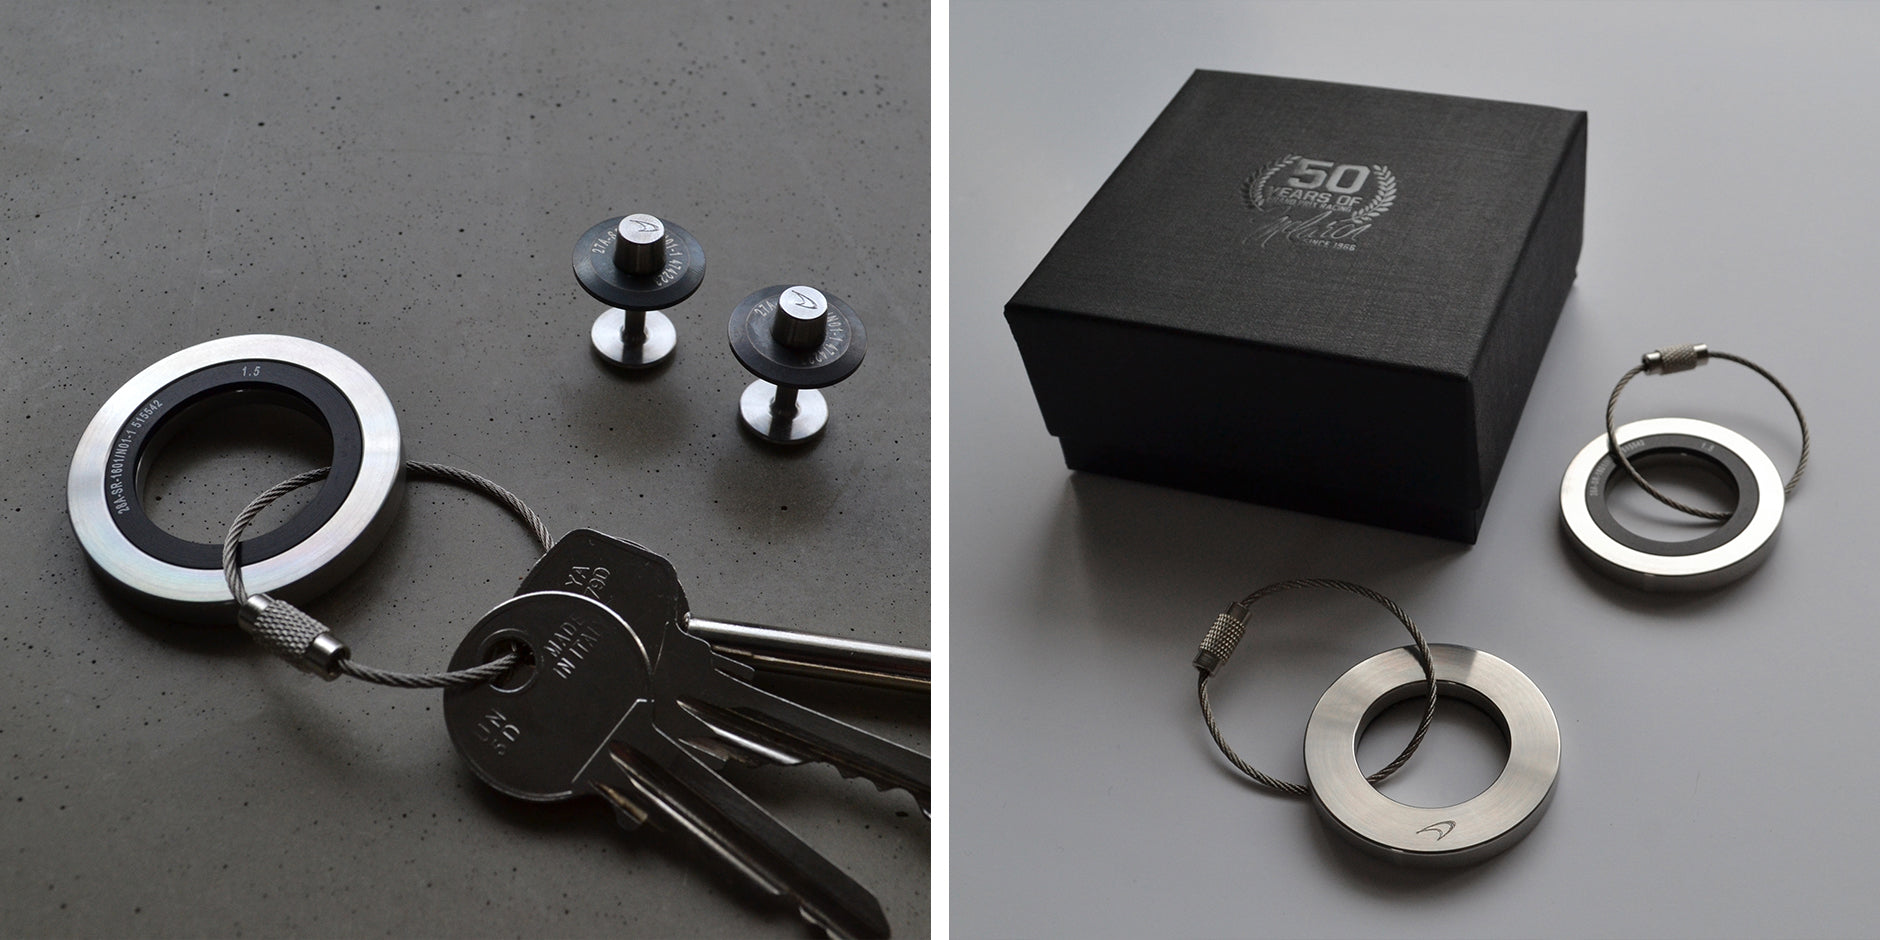 McLaren cufflinks | McLaren keyring | Alice Made This